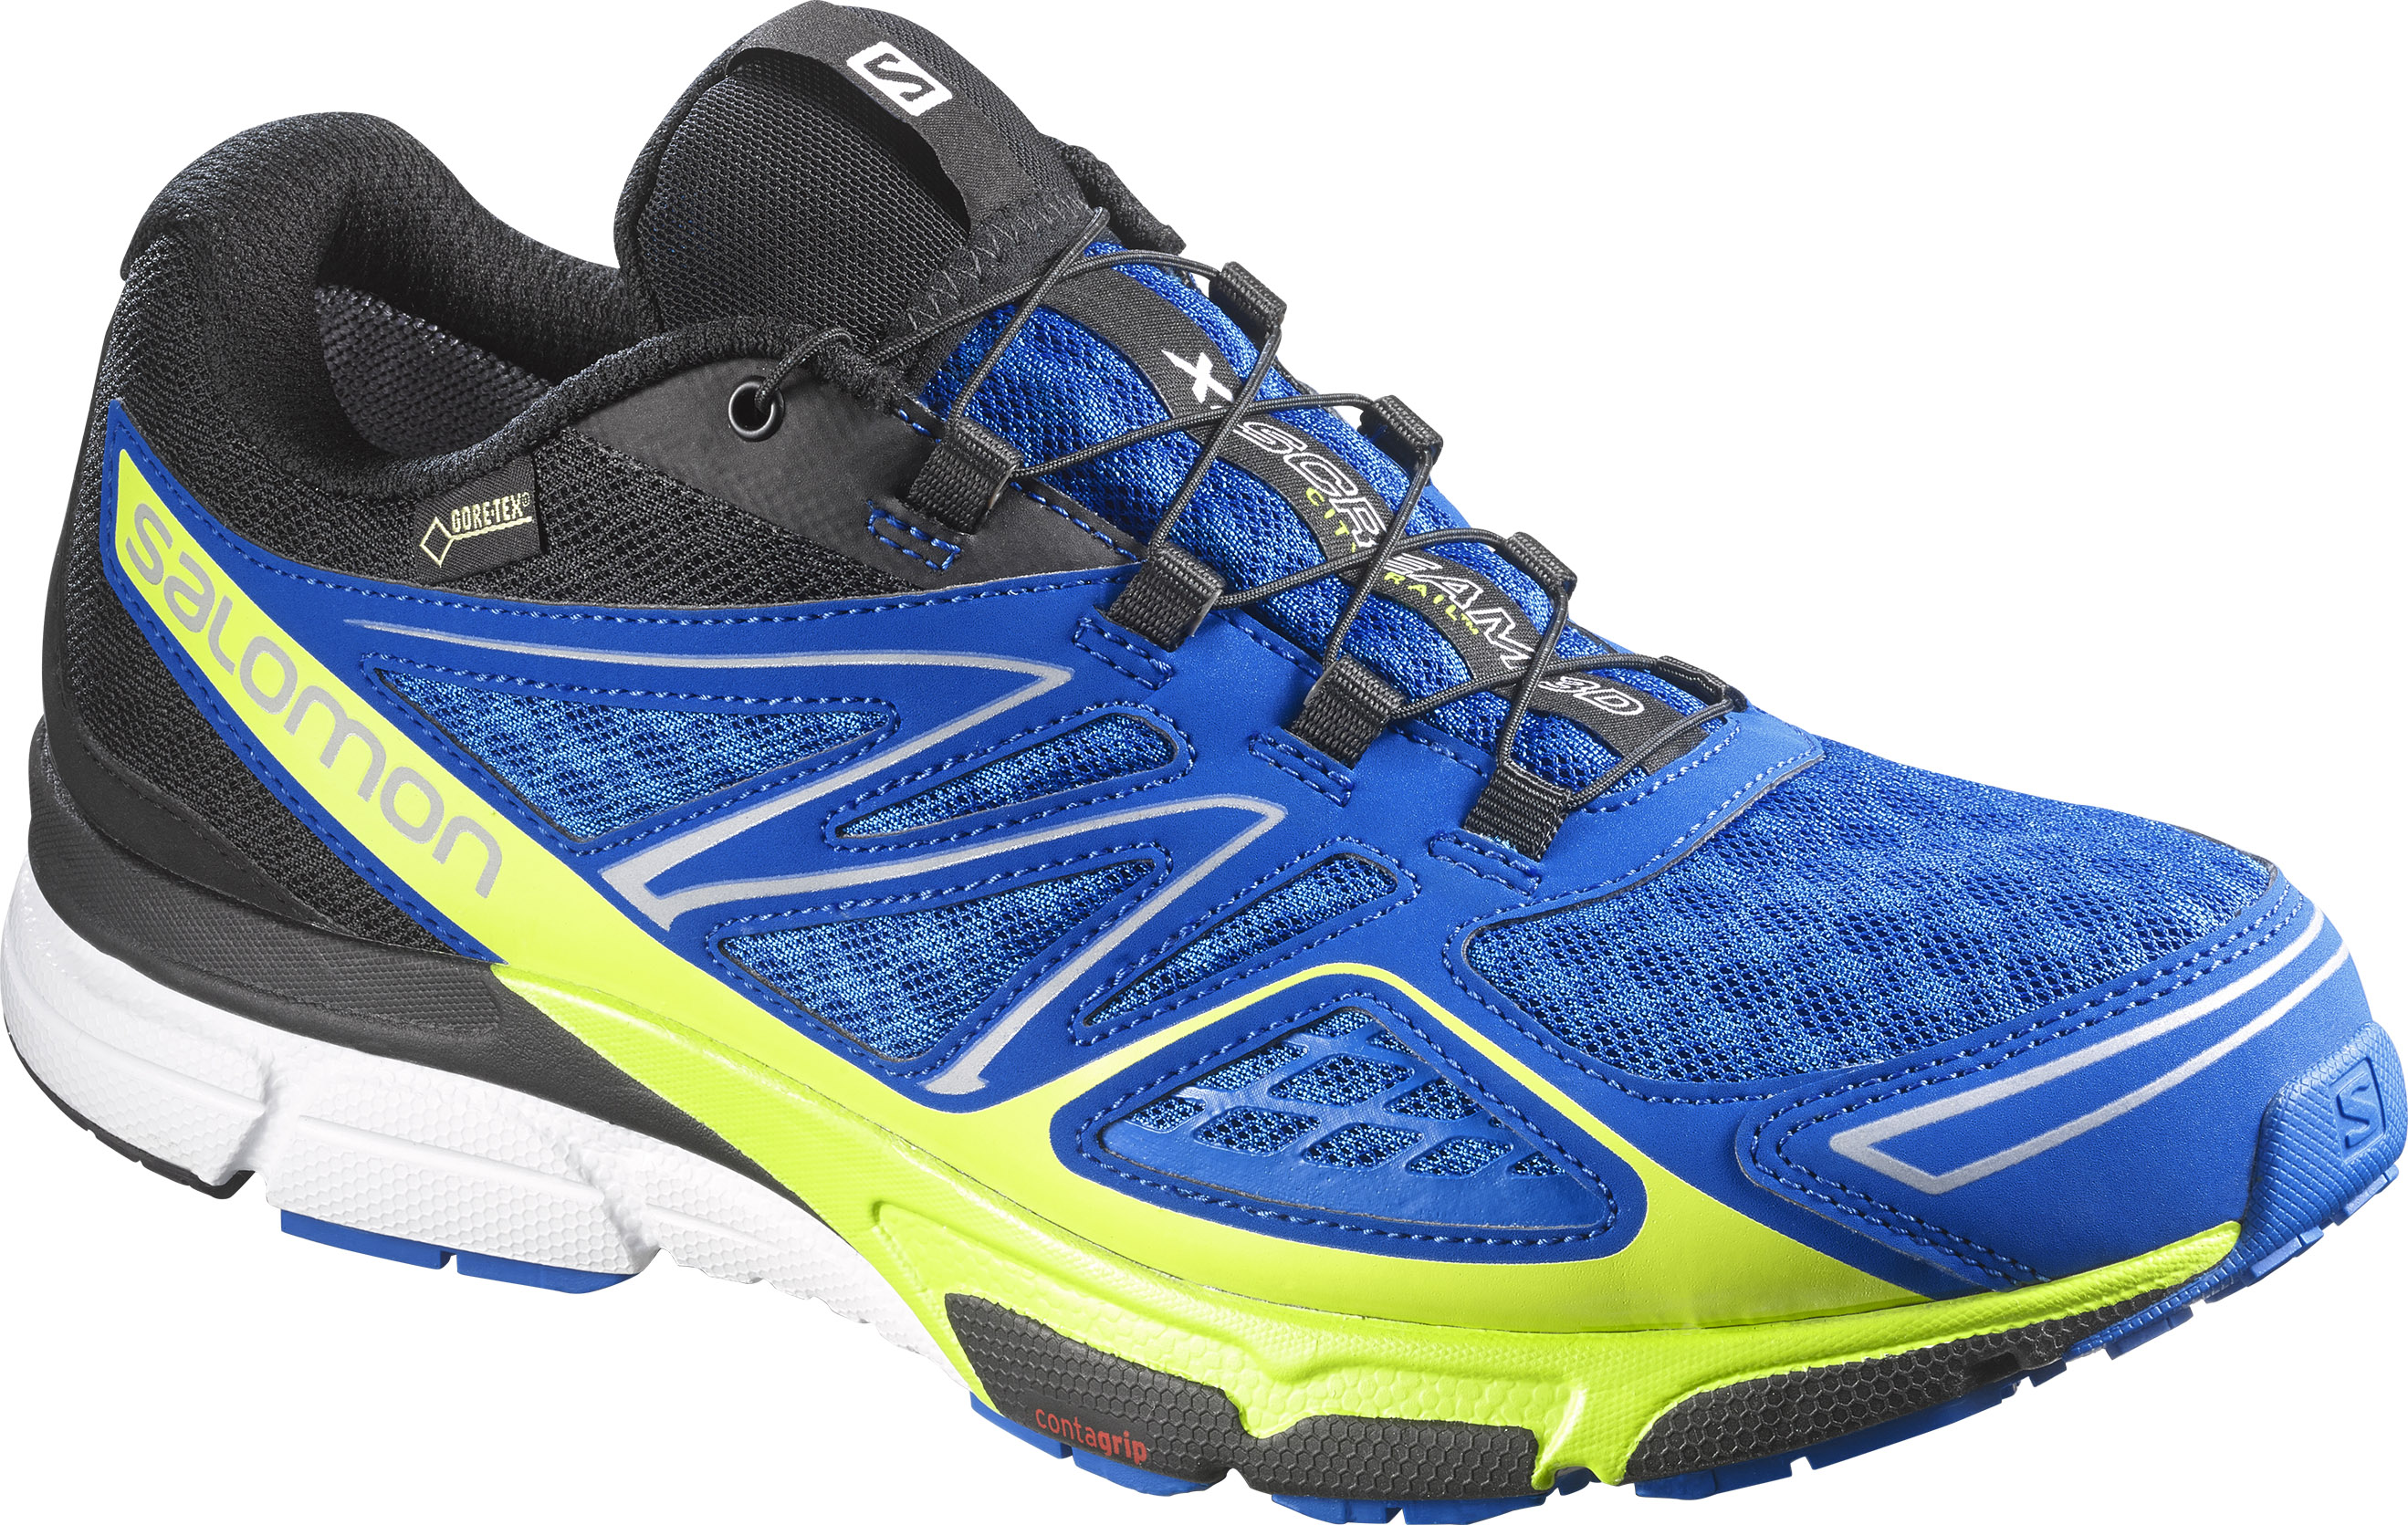 Salomon X-Scream 3D GTX 375965 42